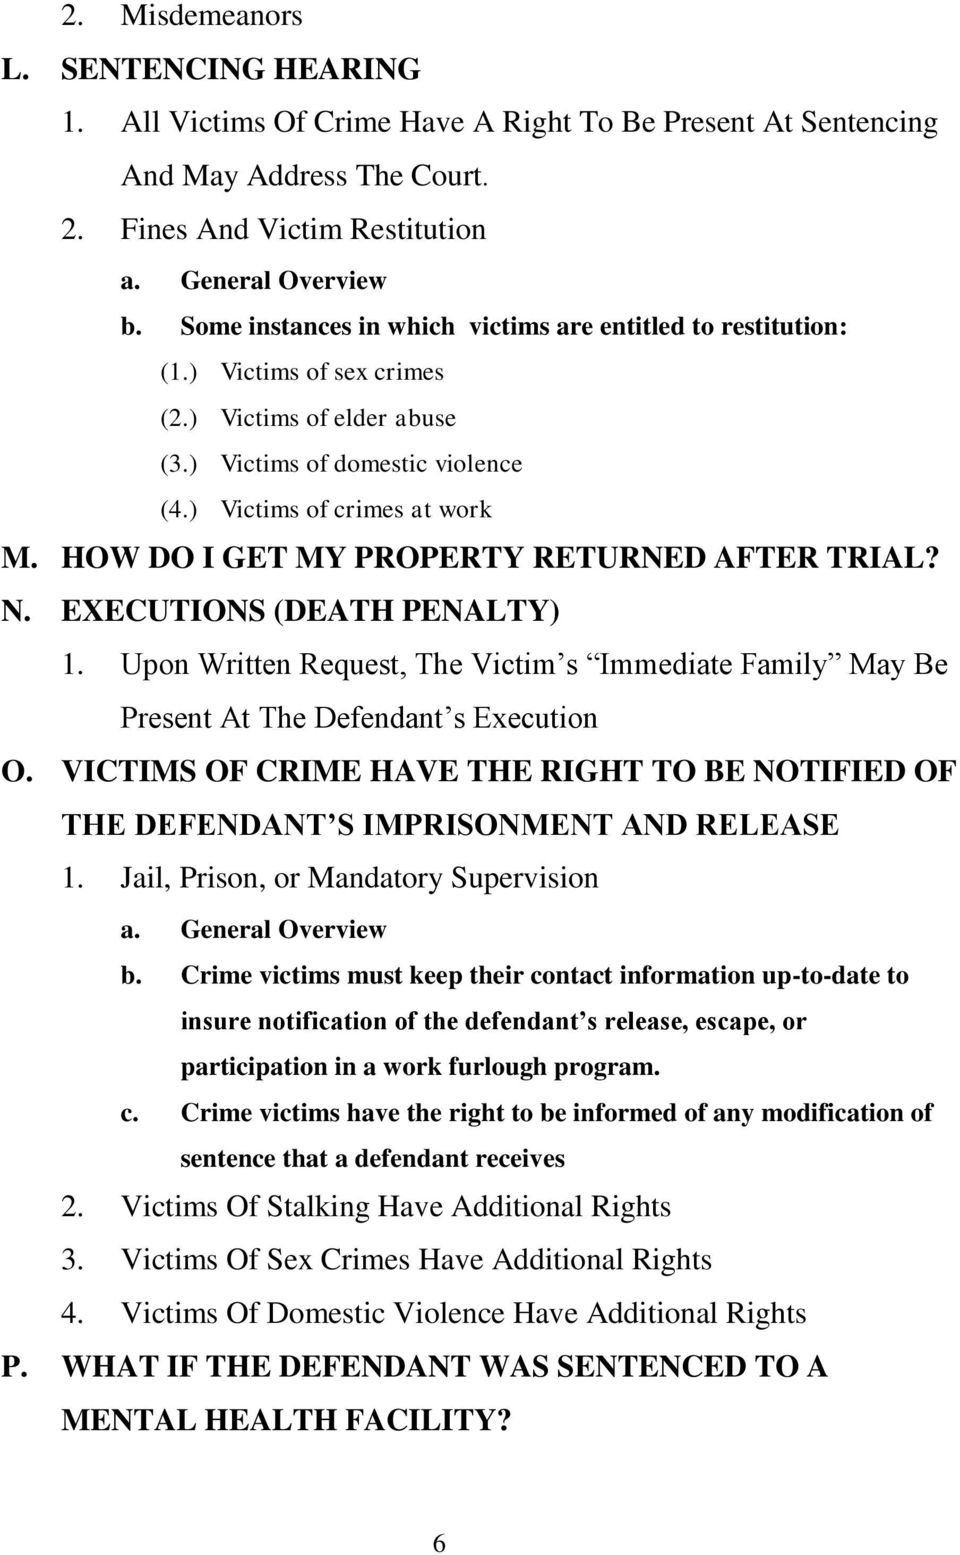 HOW DO I GET MY PROPERTY RETURNED AFTER TRIAL? N. EXECUTIONS (DEATH PENALTY) 1. Upon Written Request, The Victim s Immediate Family May Be Present At The Defendant s Execution O.